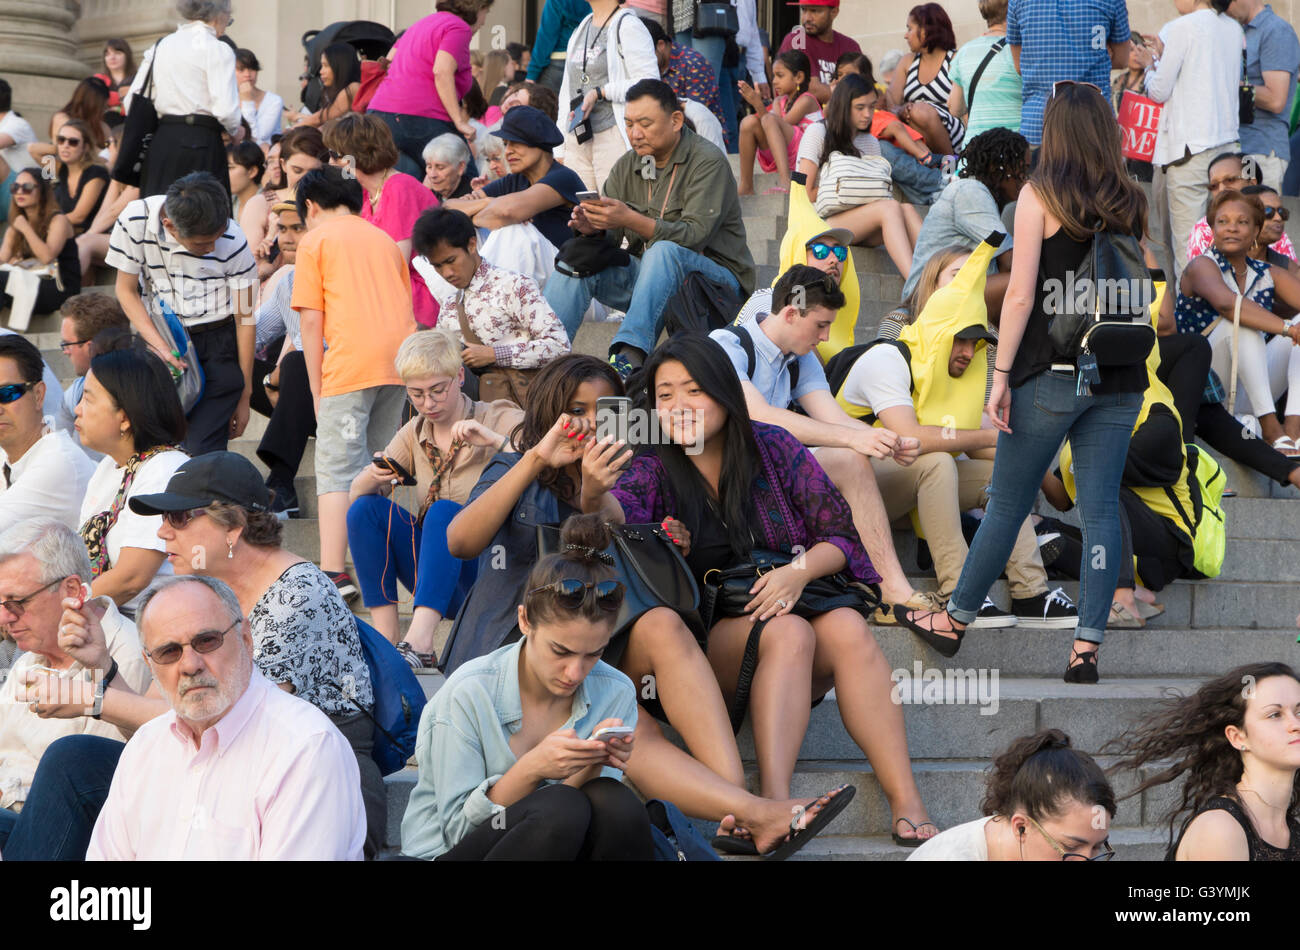 Crowd of people sitting on steps with focus on two girls taking a selfie. - Stock Image